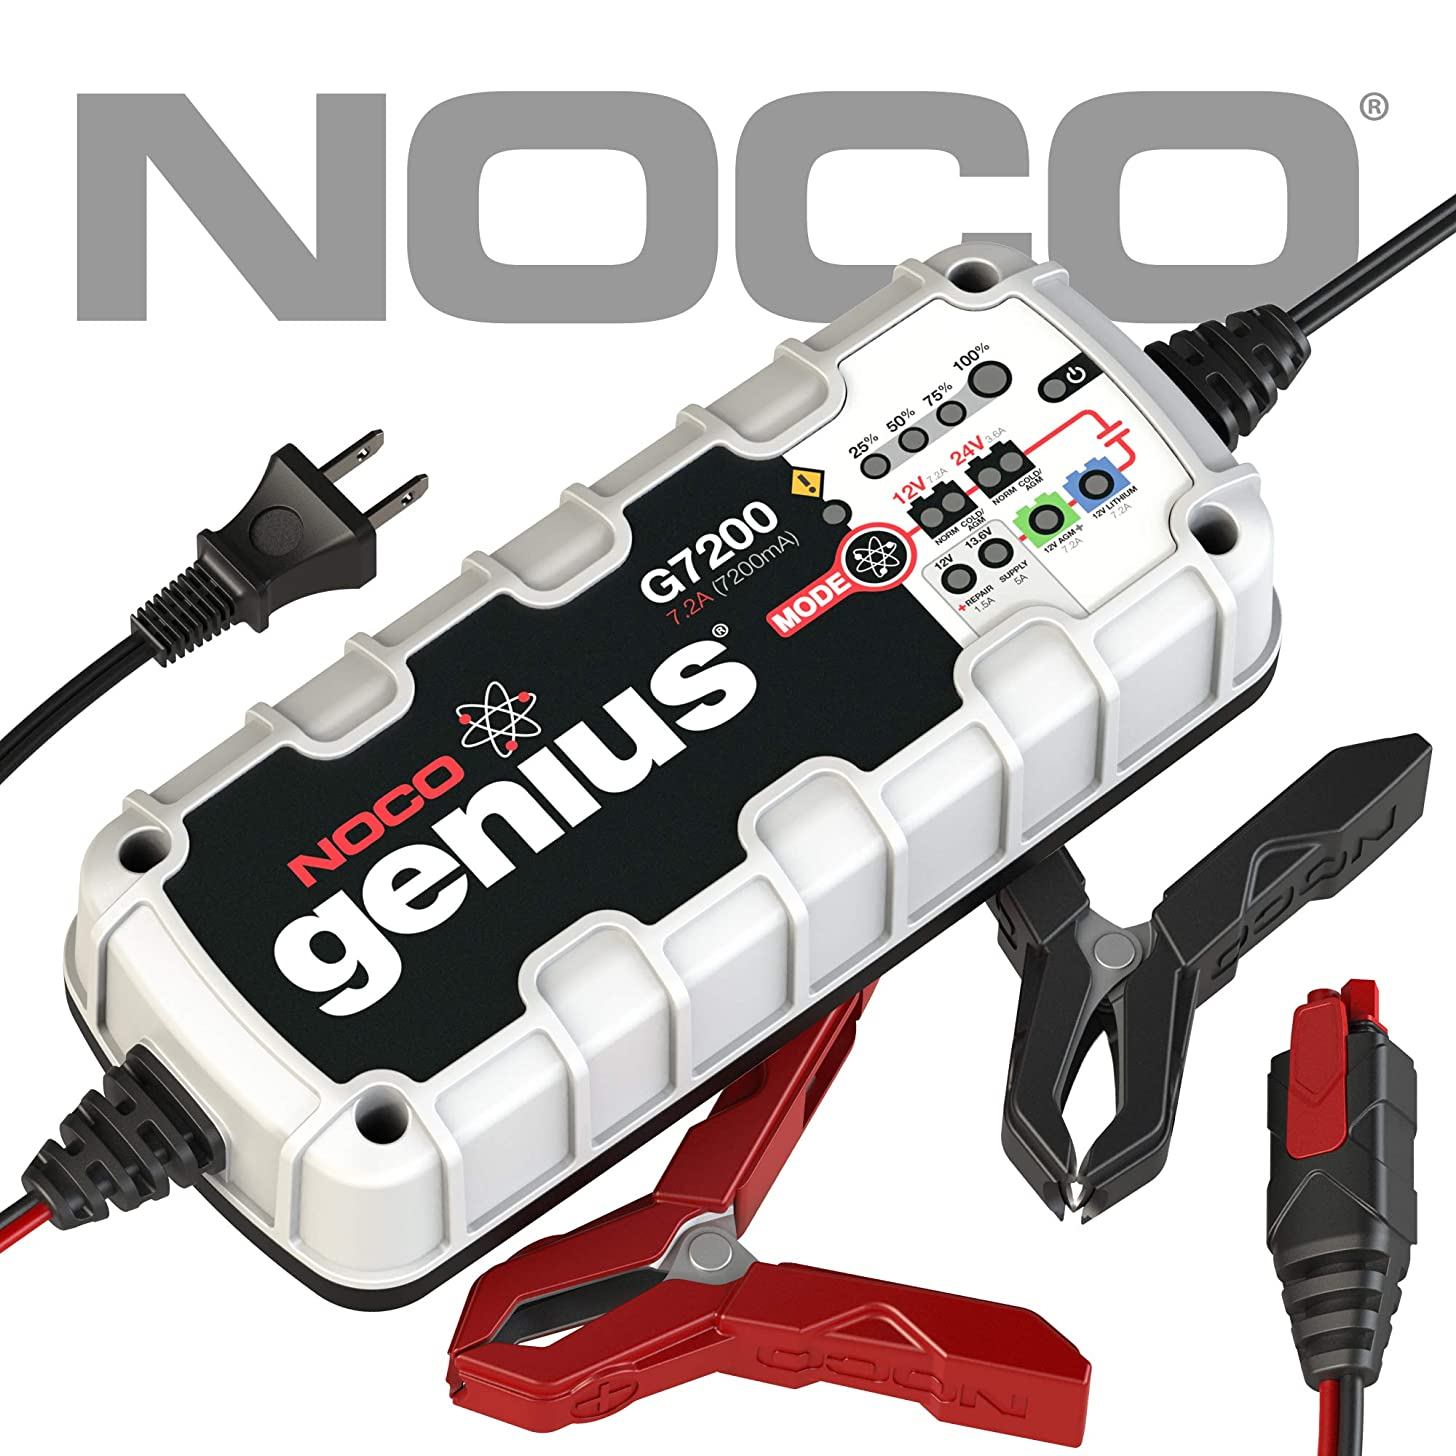 NOCO Genius G7200 12V/24V 7.2 Amp Battery Charger and Maintainer